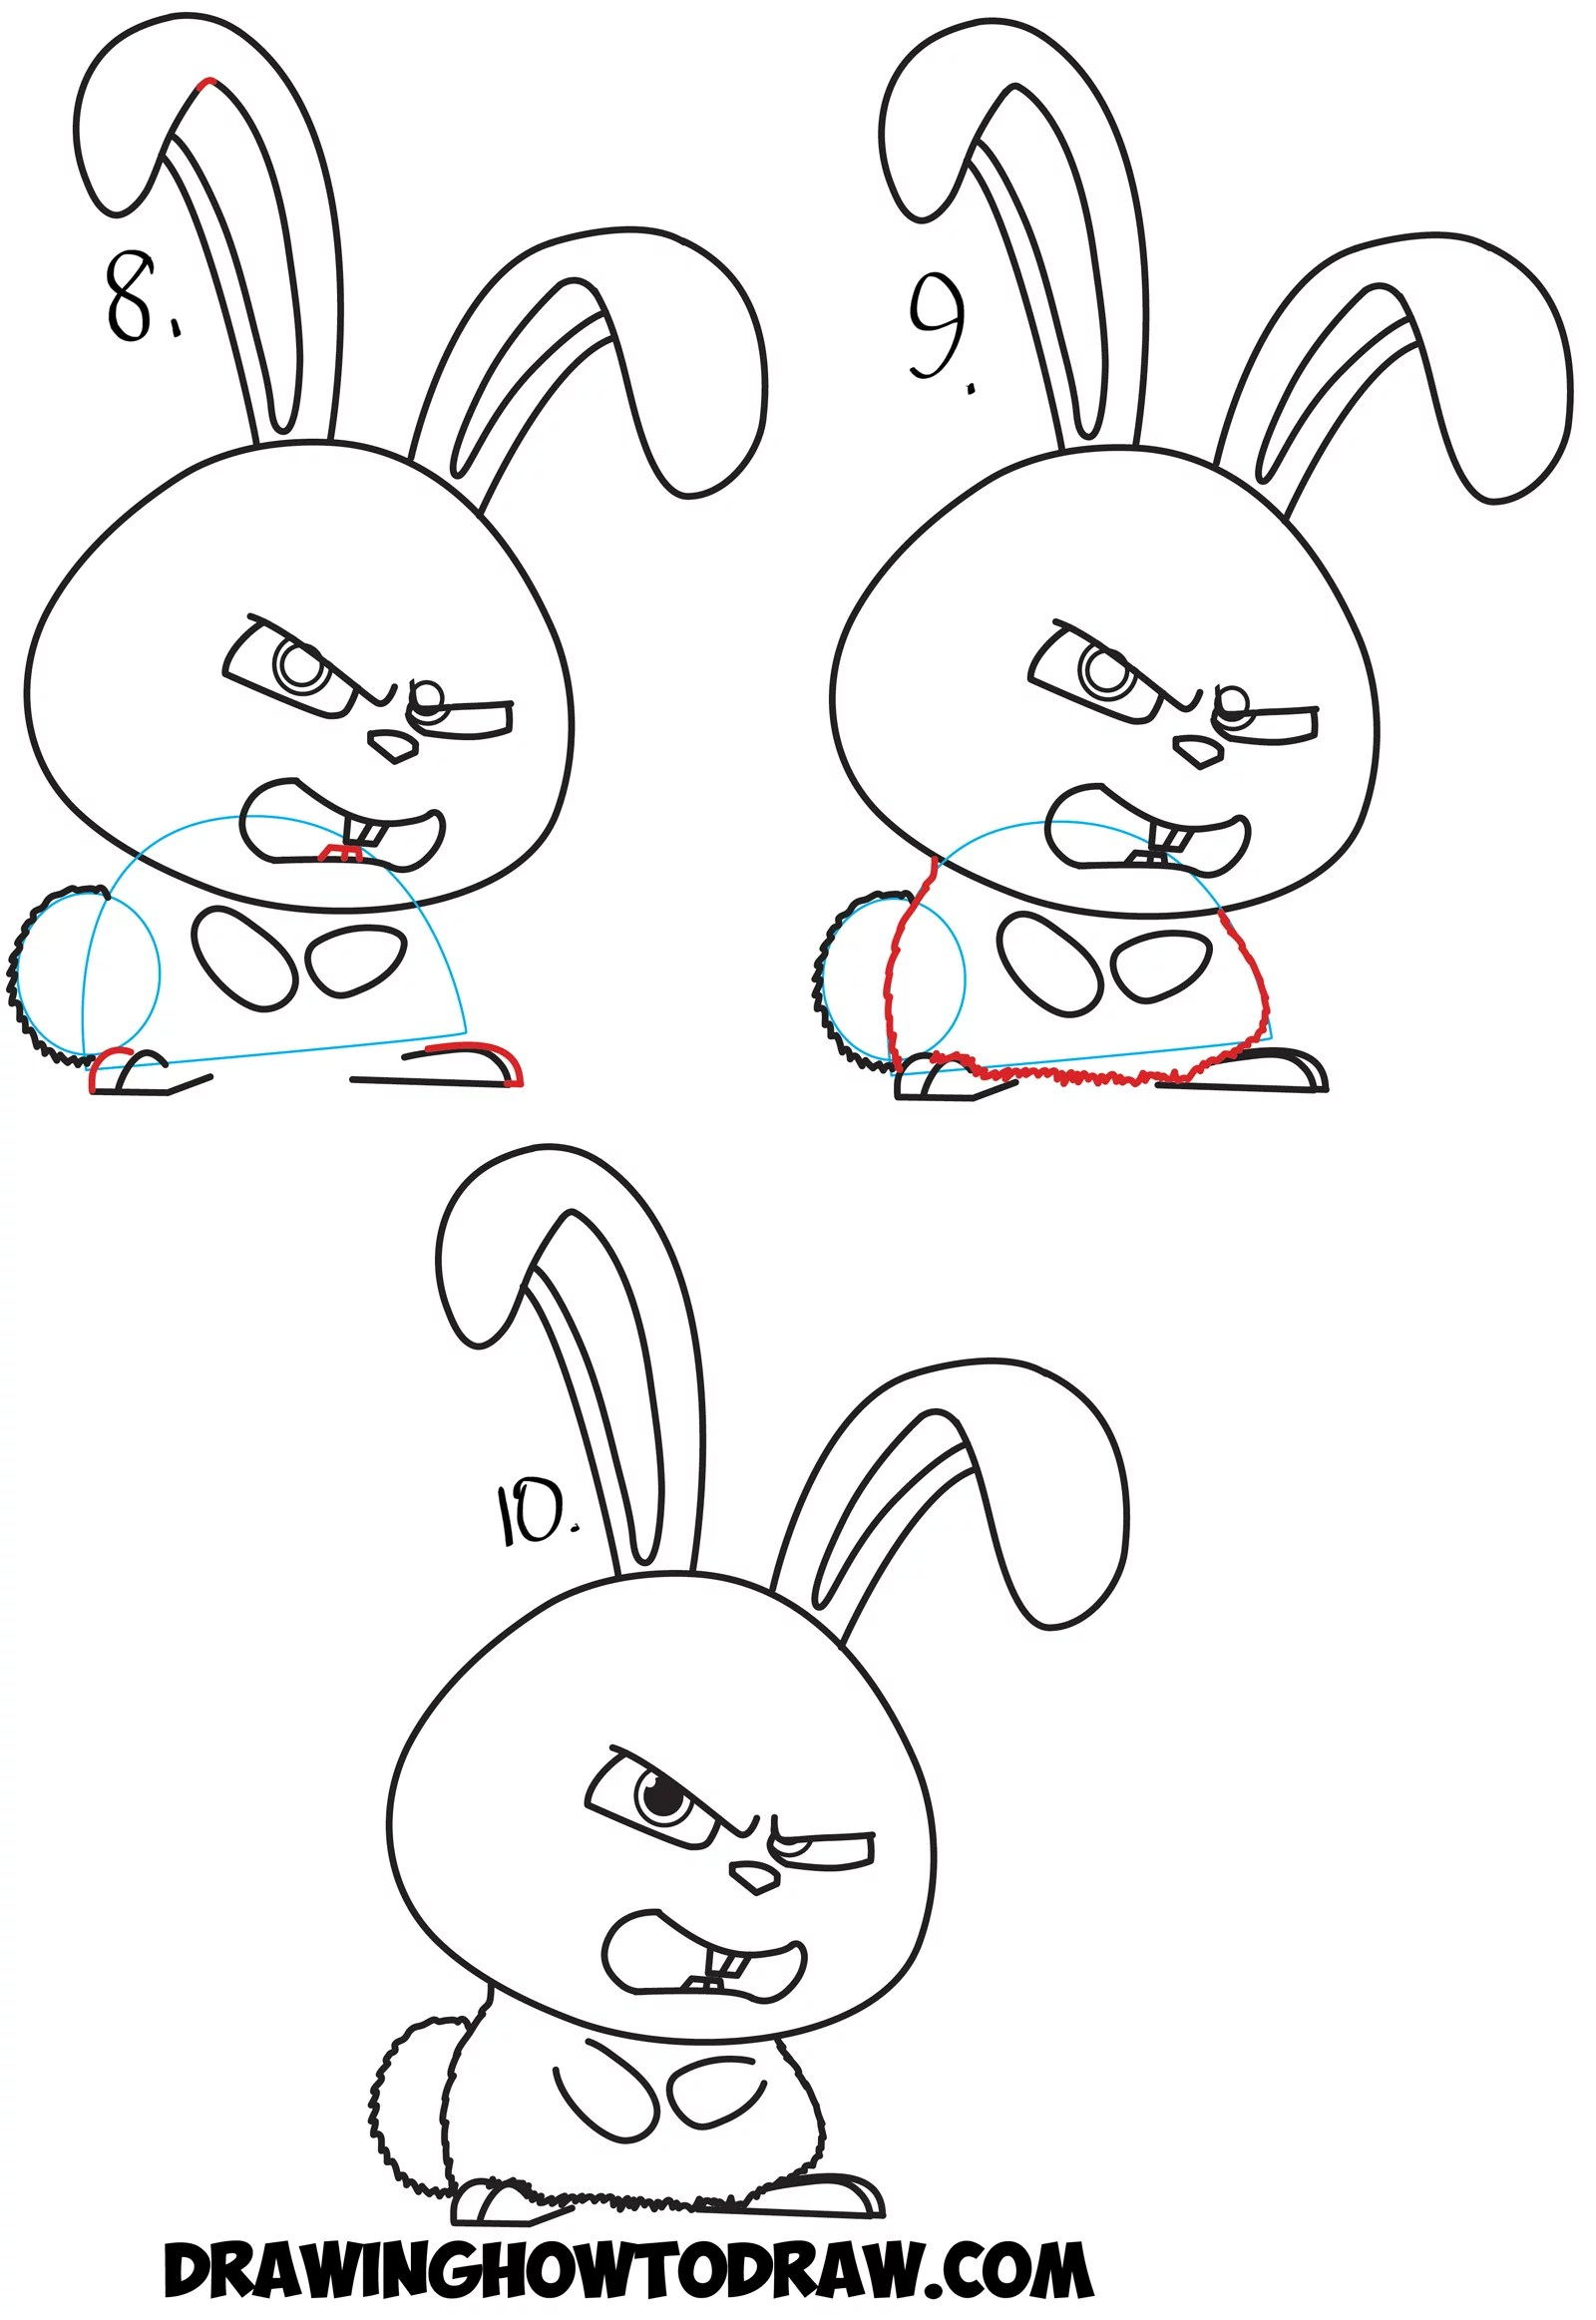 How to Draw Snowball the Bunny Rabbit from The Secret Life